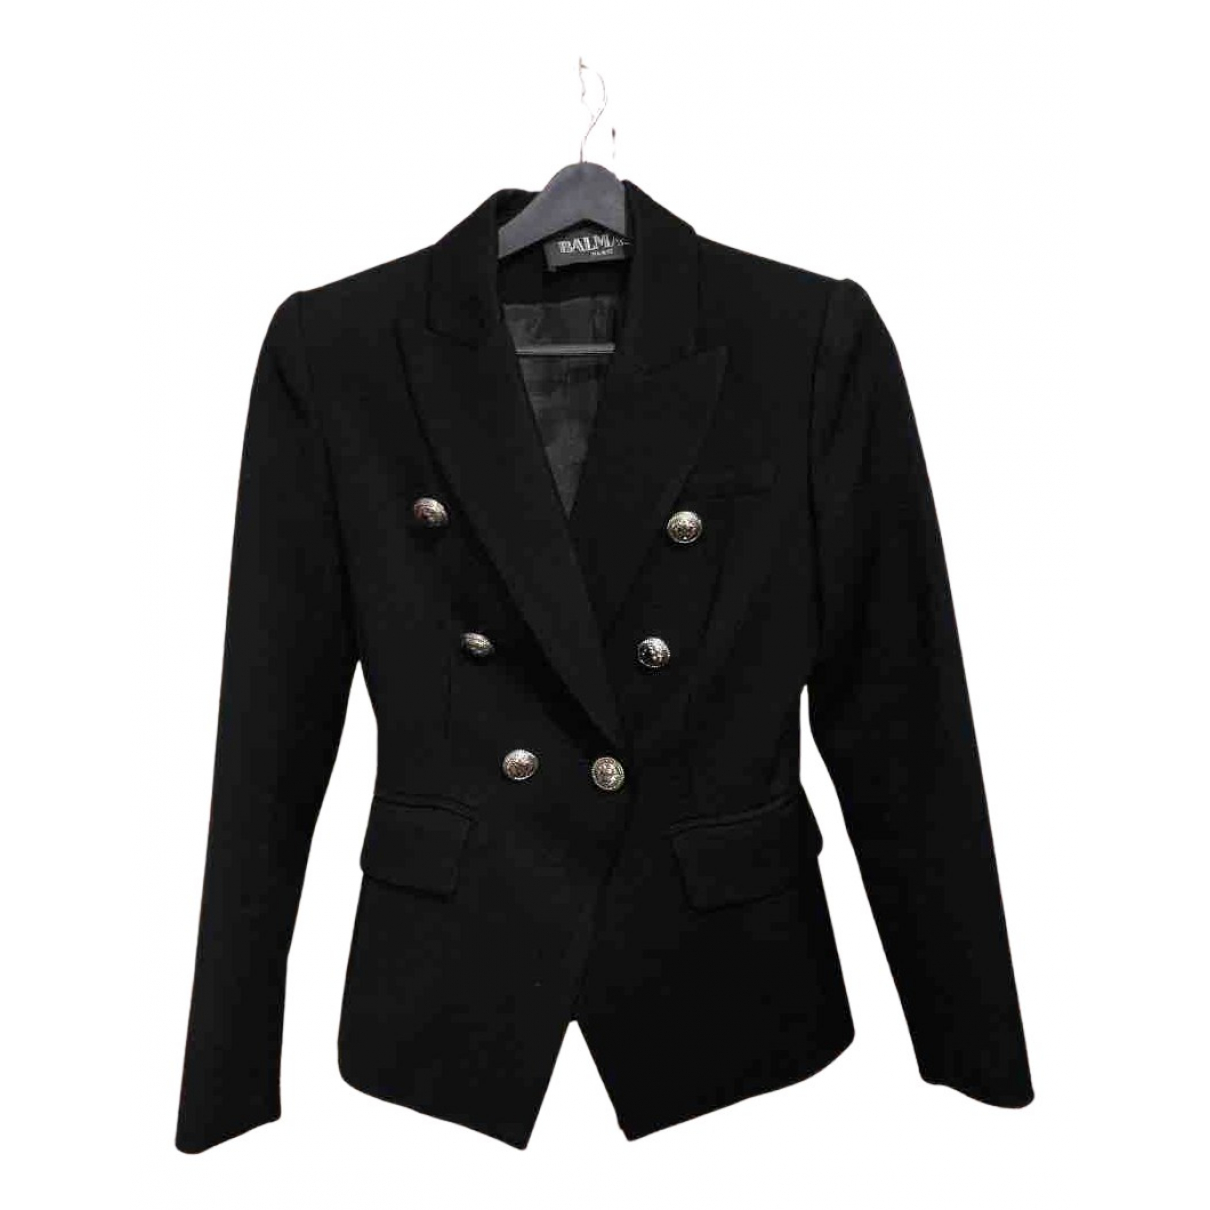 Balmain N Black jacket for Women S International